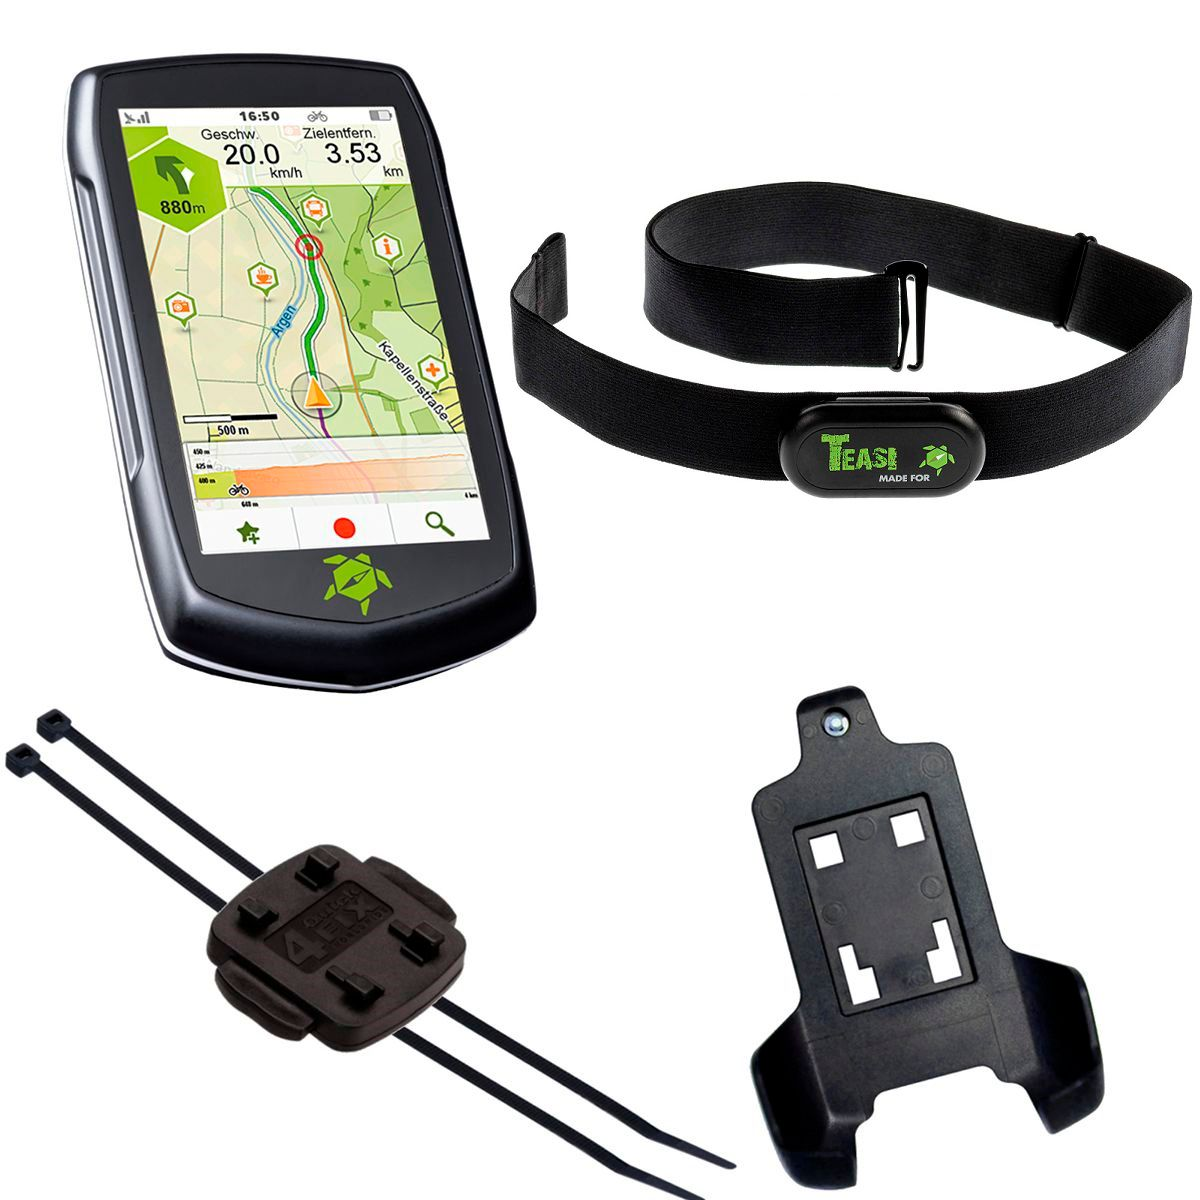 Teasi One 4 HR GPS Device with Heart Rate Sensor | Heart rate monitors